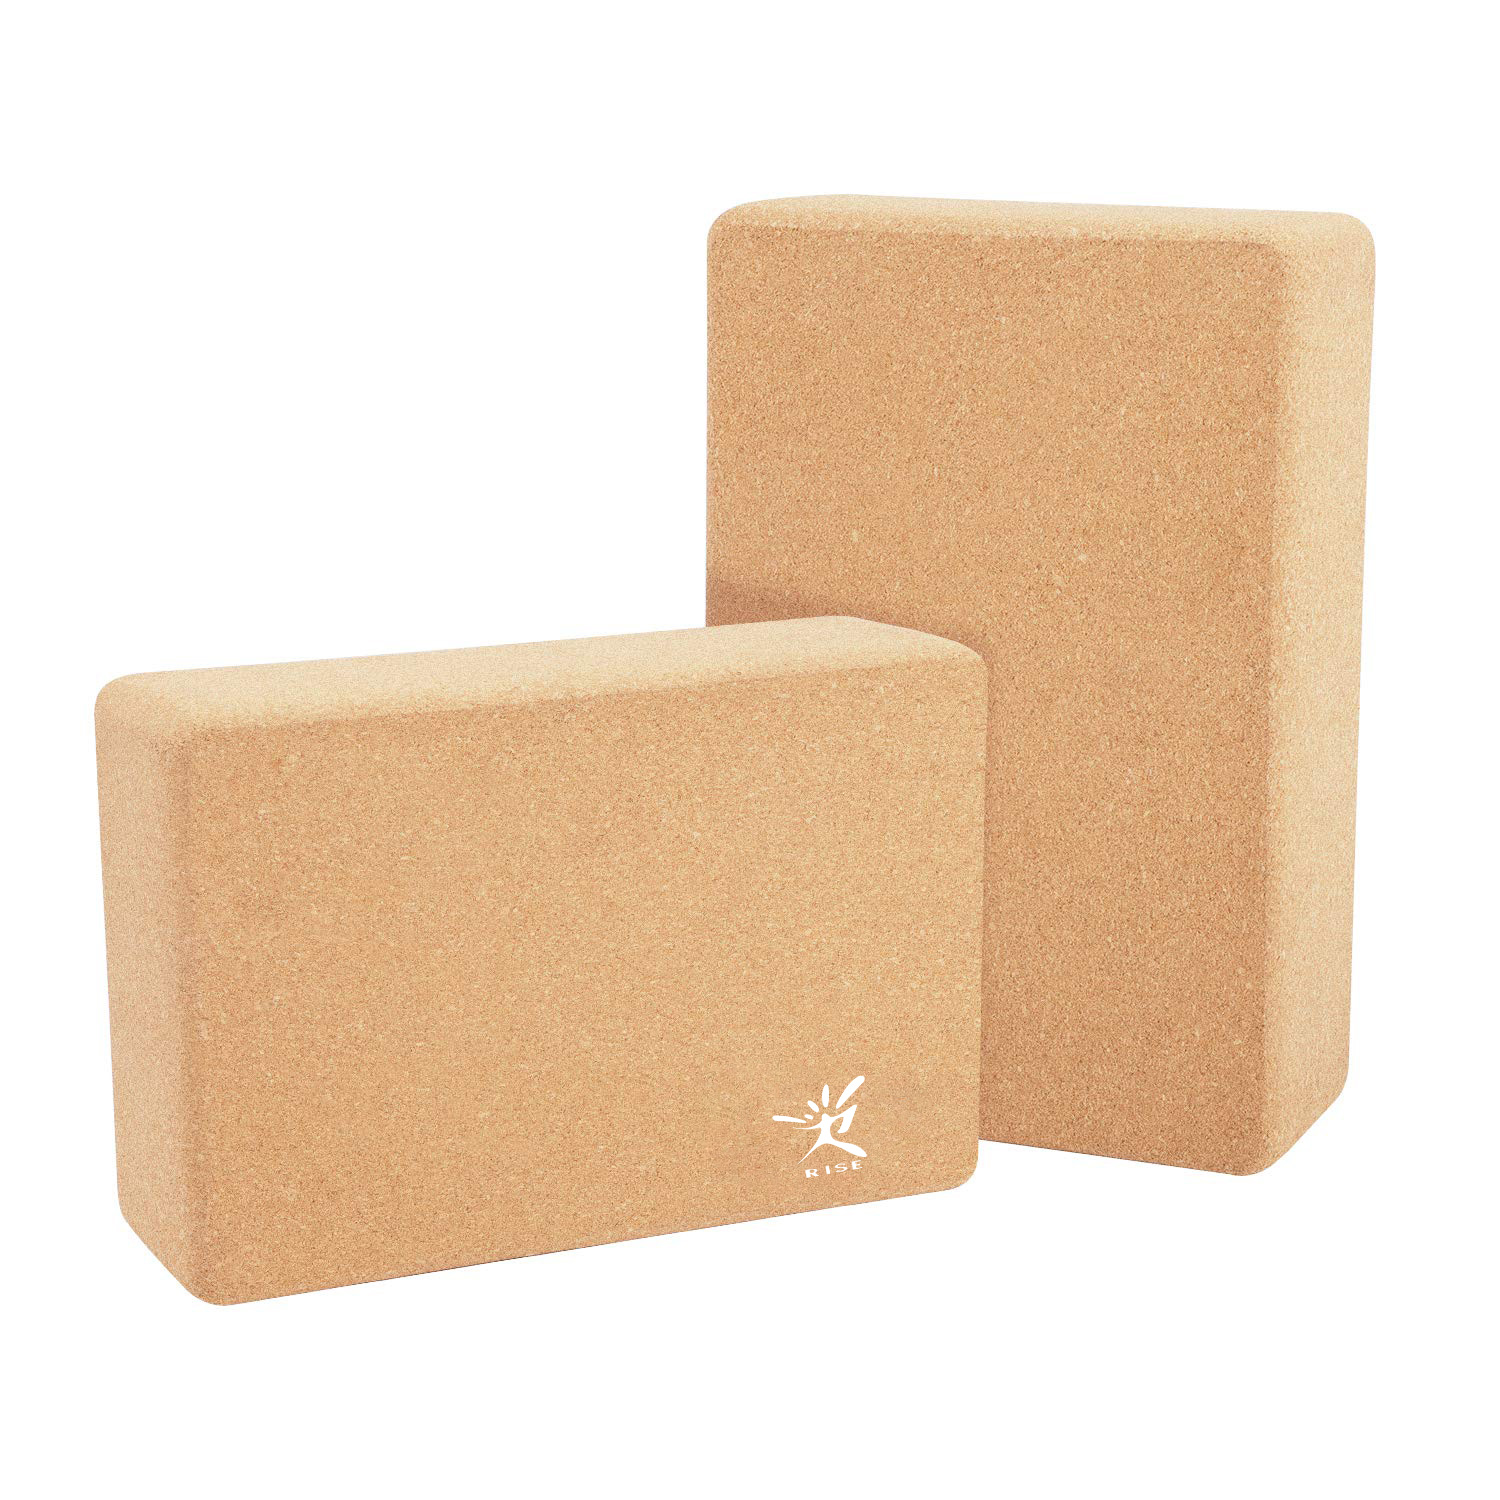 Natural & Eco-Friendly Cork Yoga Block to Support and Deepen Poses Featured Image